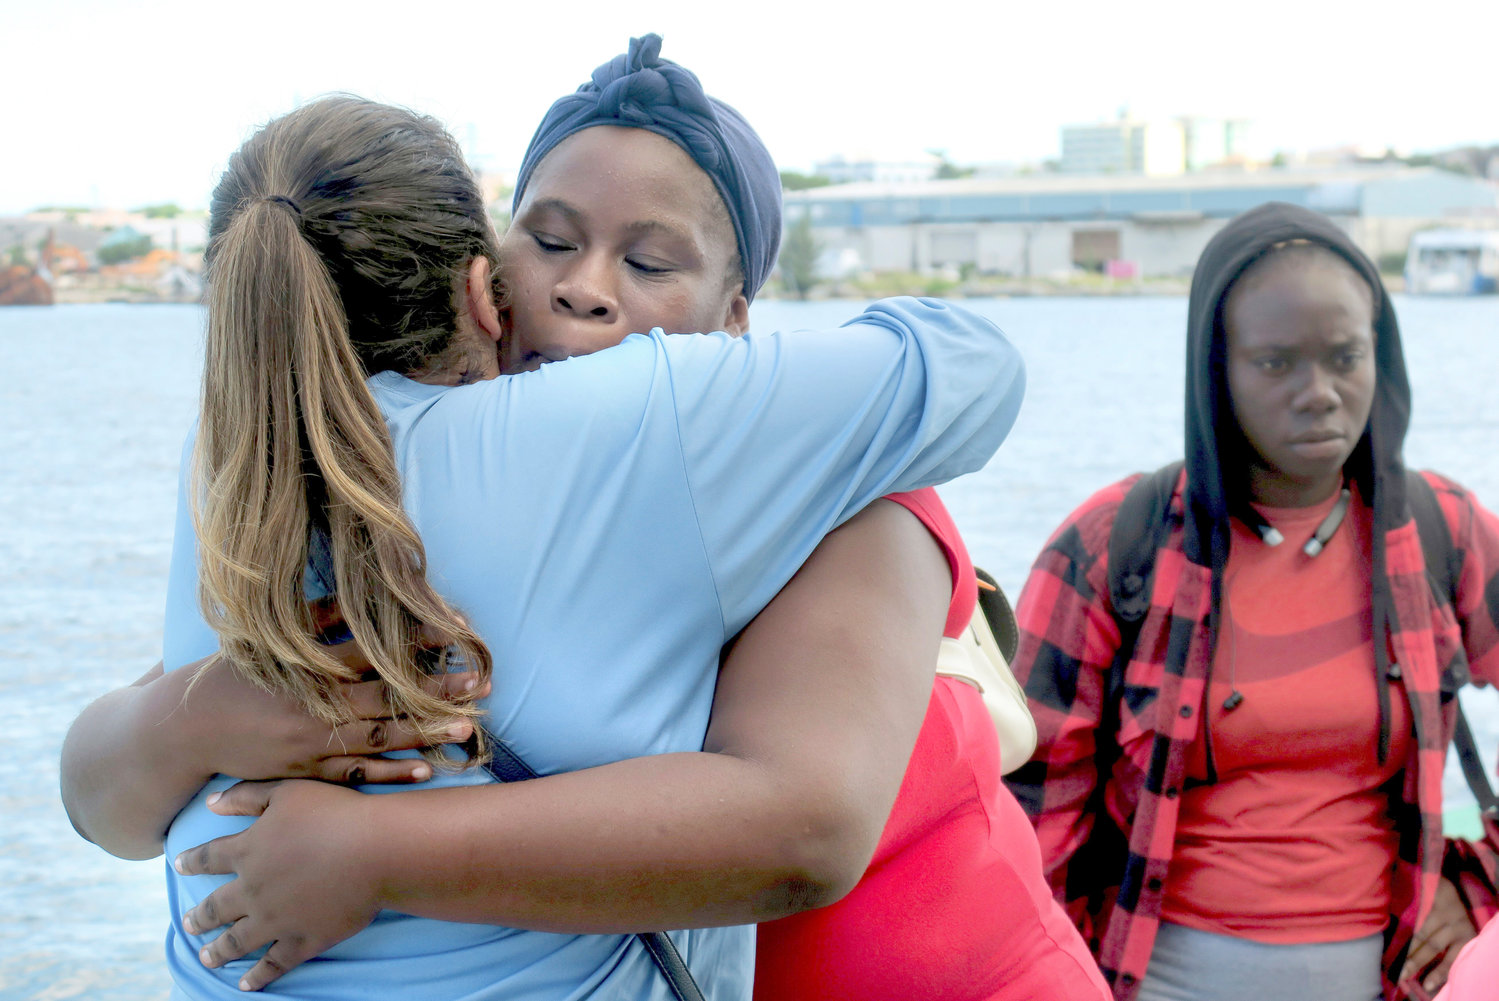 HUG GOODBYE — Akela Moxey, who was evacuated from Freeport, Bahamas, aboard Royal Caribbean's Mariner of the Seas cruise ship, hugs a Royal Caribbean employee, left, goodbye after arriving in Nassau, Bahamas, on Saturday. Freeport sustained devastating damage because of Hurricane Dorian.